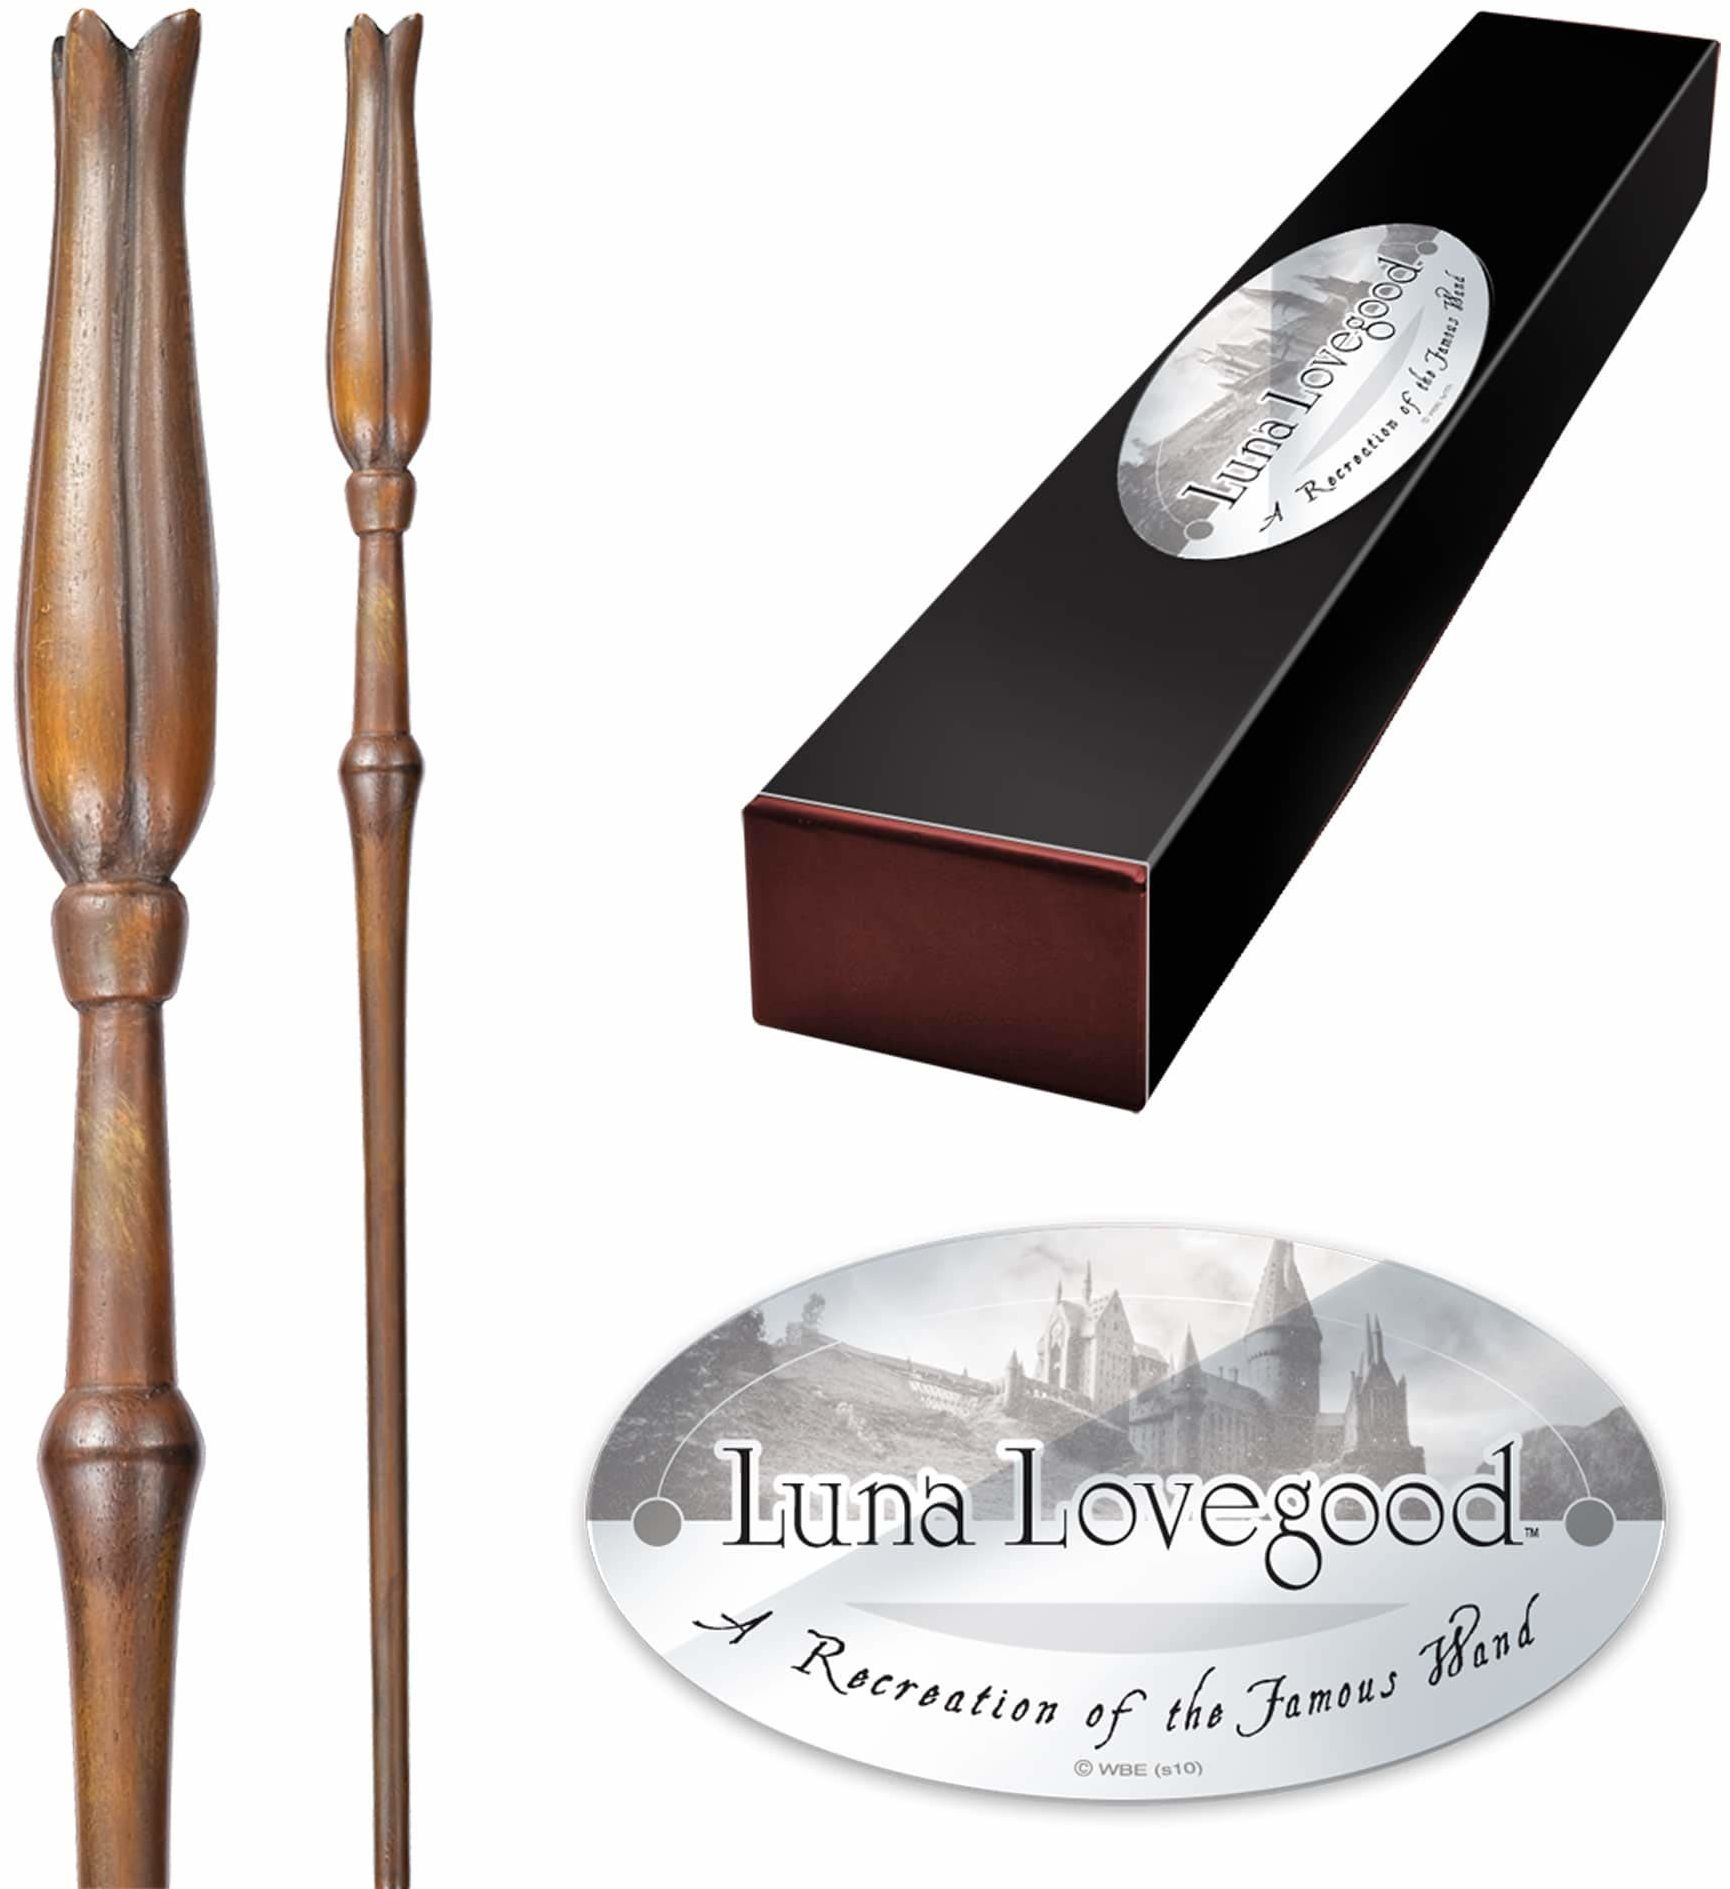 The Noble Collection - Luna Lovegood Character Wand - 13.3in (34.5cm) High Quality Harry Potter Wand With Name Tag - Harry Potter Film Set Movie Props Wands